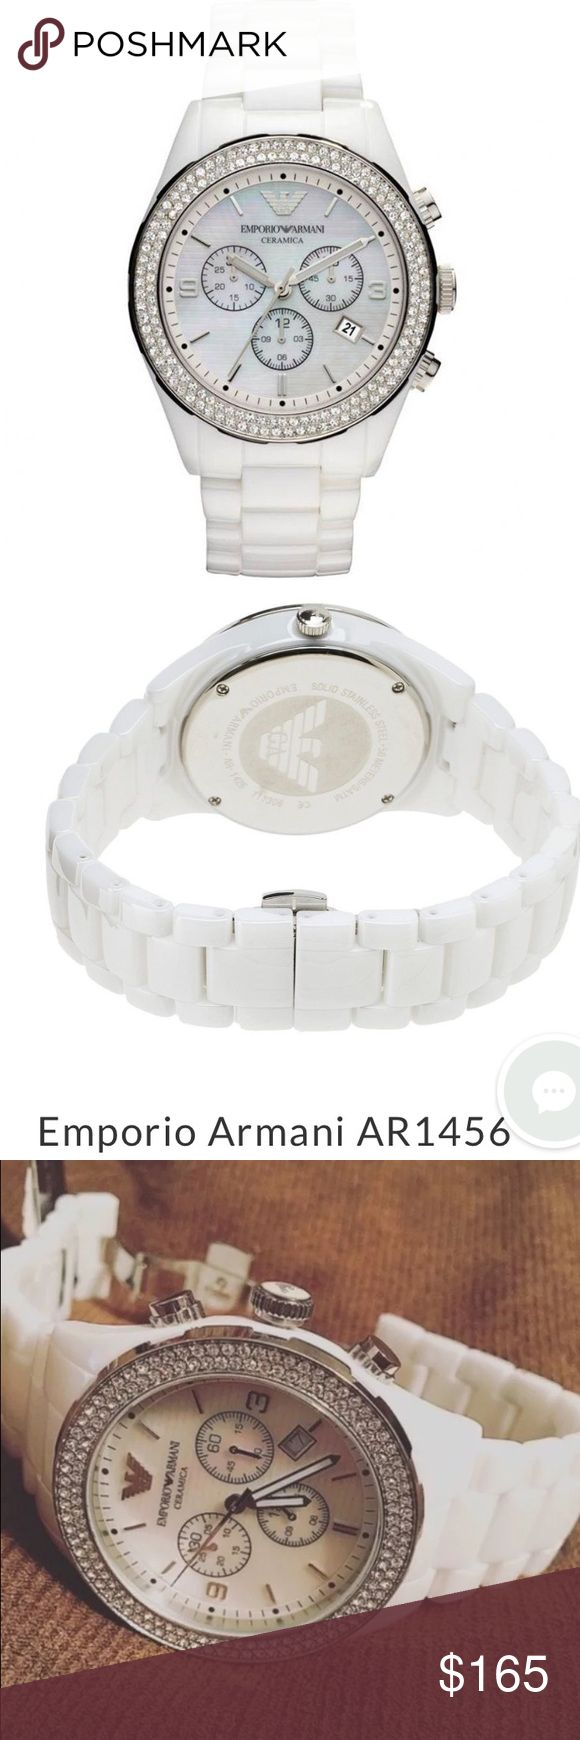 "🎉SALE🎉 NWT Armani Ceramic Watch AR1456 Women's white ceramic Emporio Armani watch. Has two rows of Swarovski crystals around the bezel, mother of pearl face, and chronograph feature. Watch is NEW with defects. Never warn, new with tags! However, the chronograph (stopwatch function) resets to the ""10"" hand instead of ""12"" hand. Battery works, everything is in excellent condition! Original AR box not included. Authentic. No trades! Emporio Armani Accessories Watches"